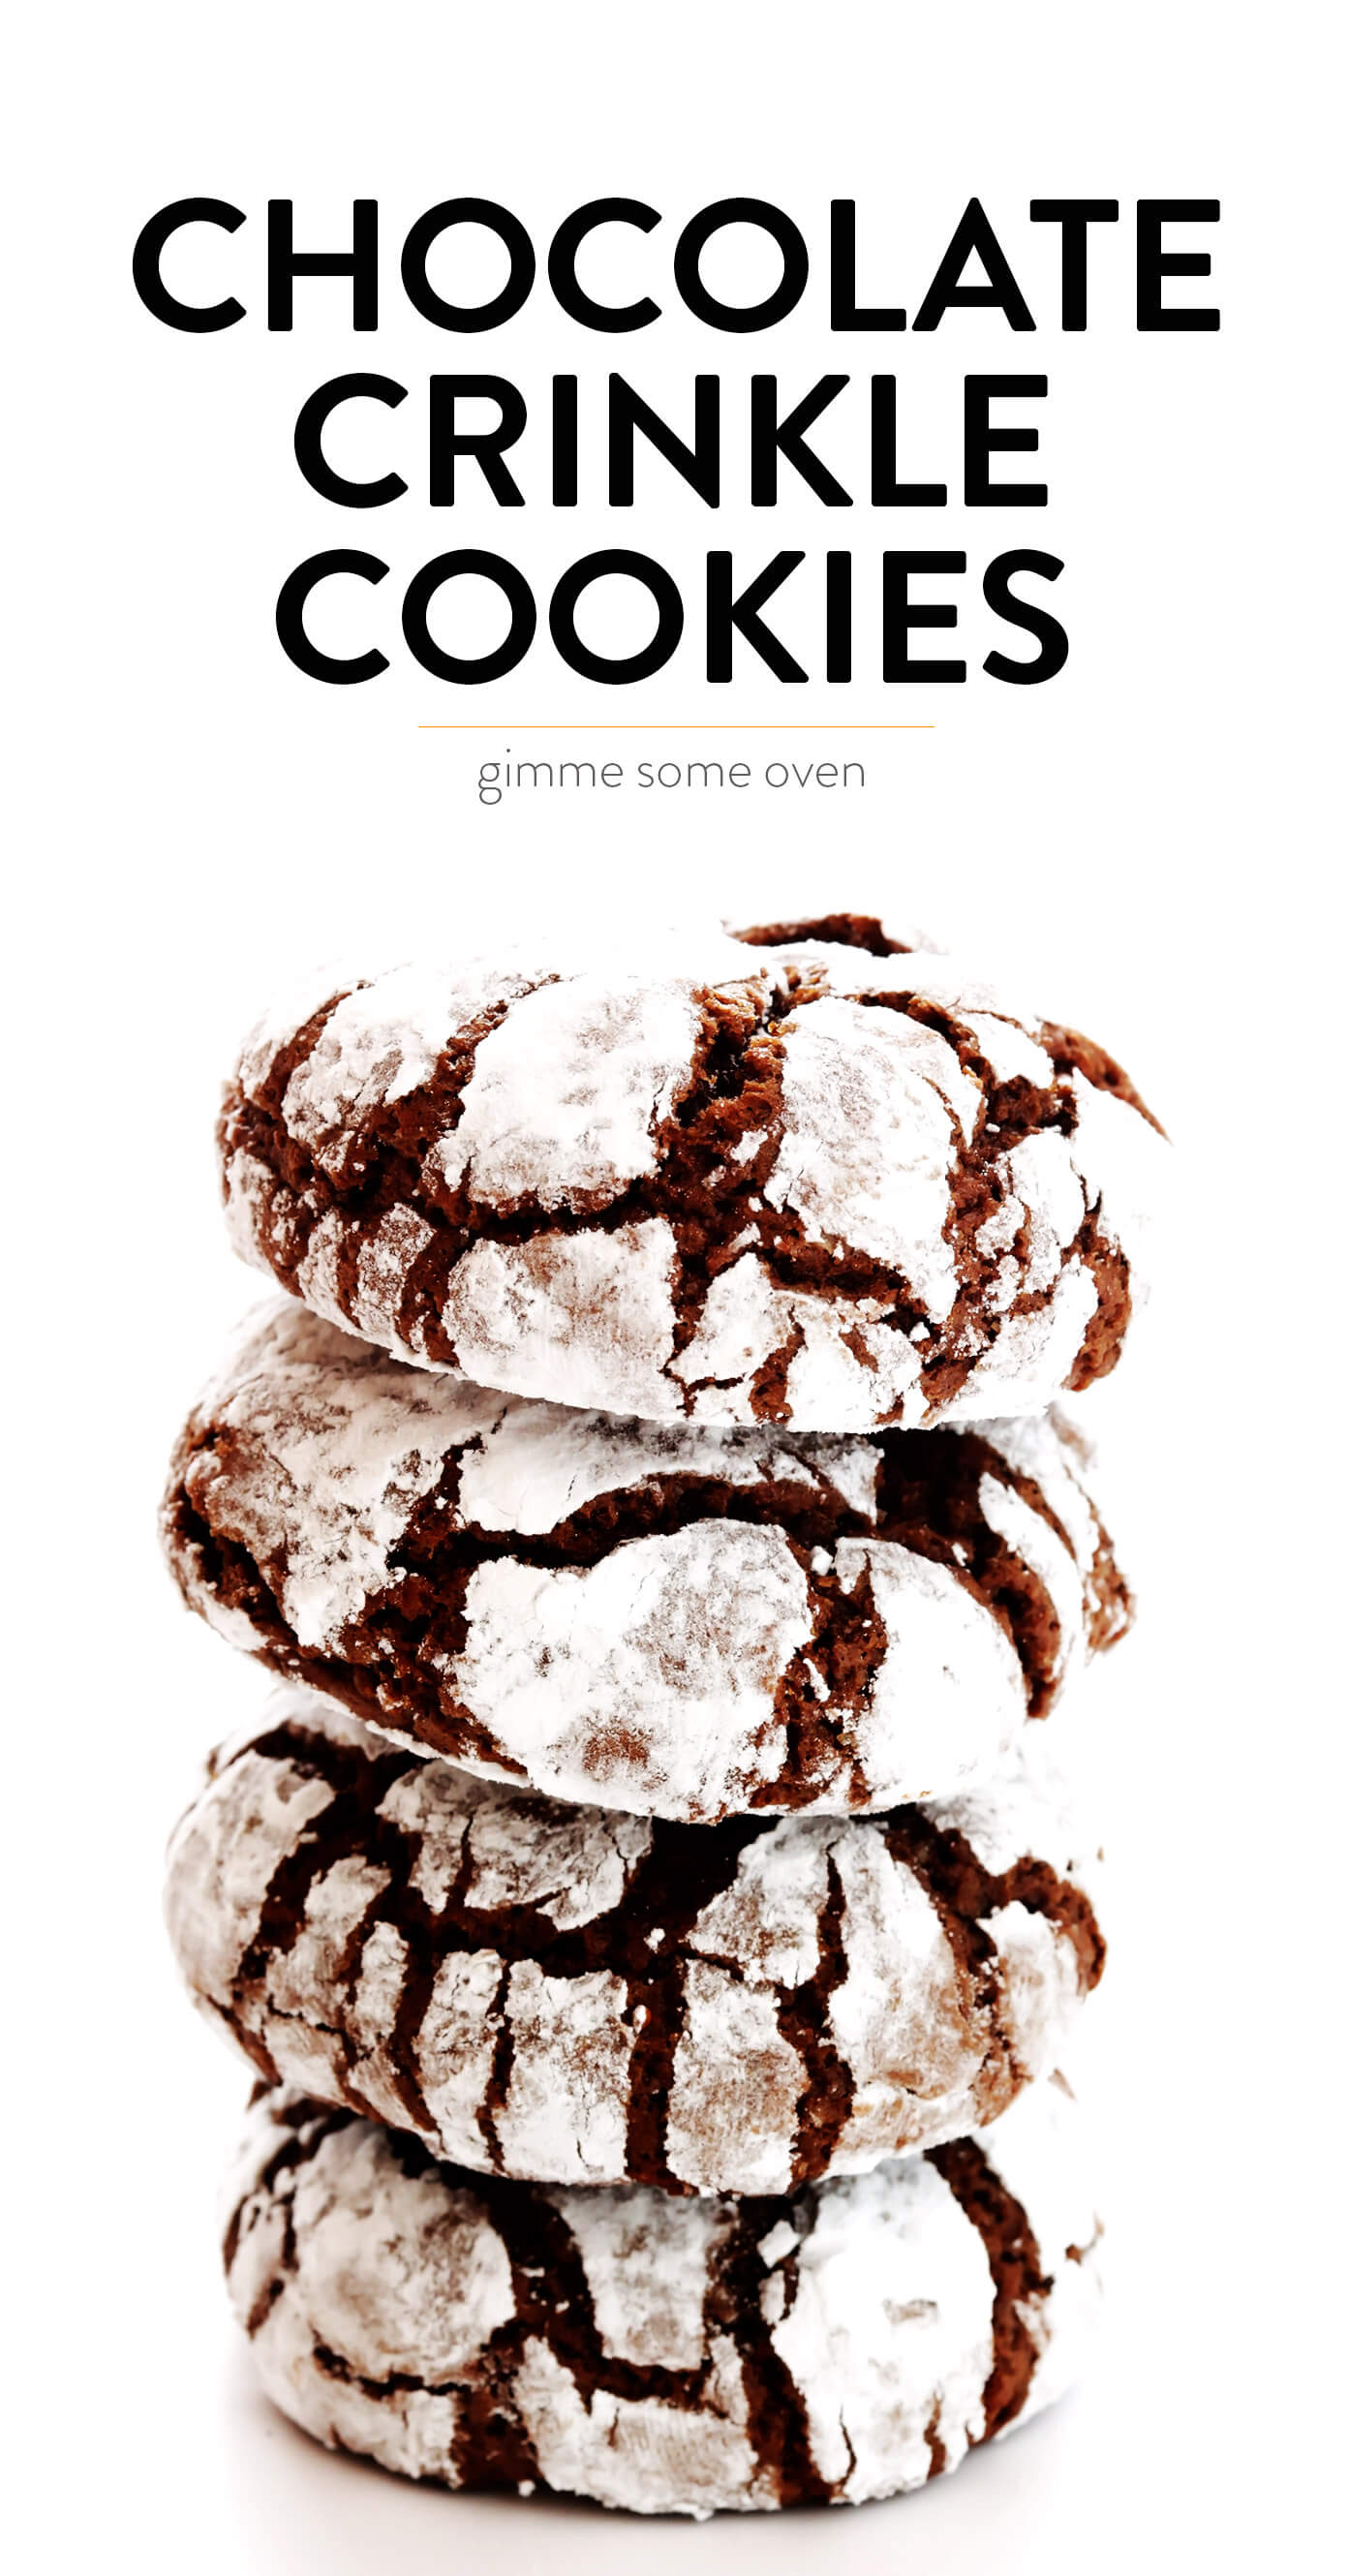 Chocolate Crinkle Cookies Gimme Some Oven